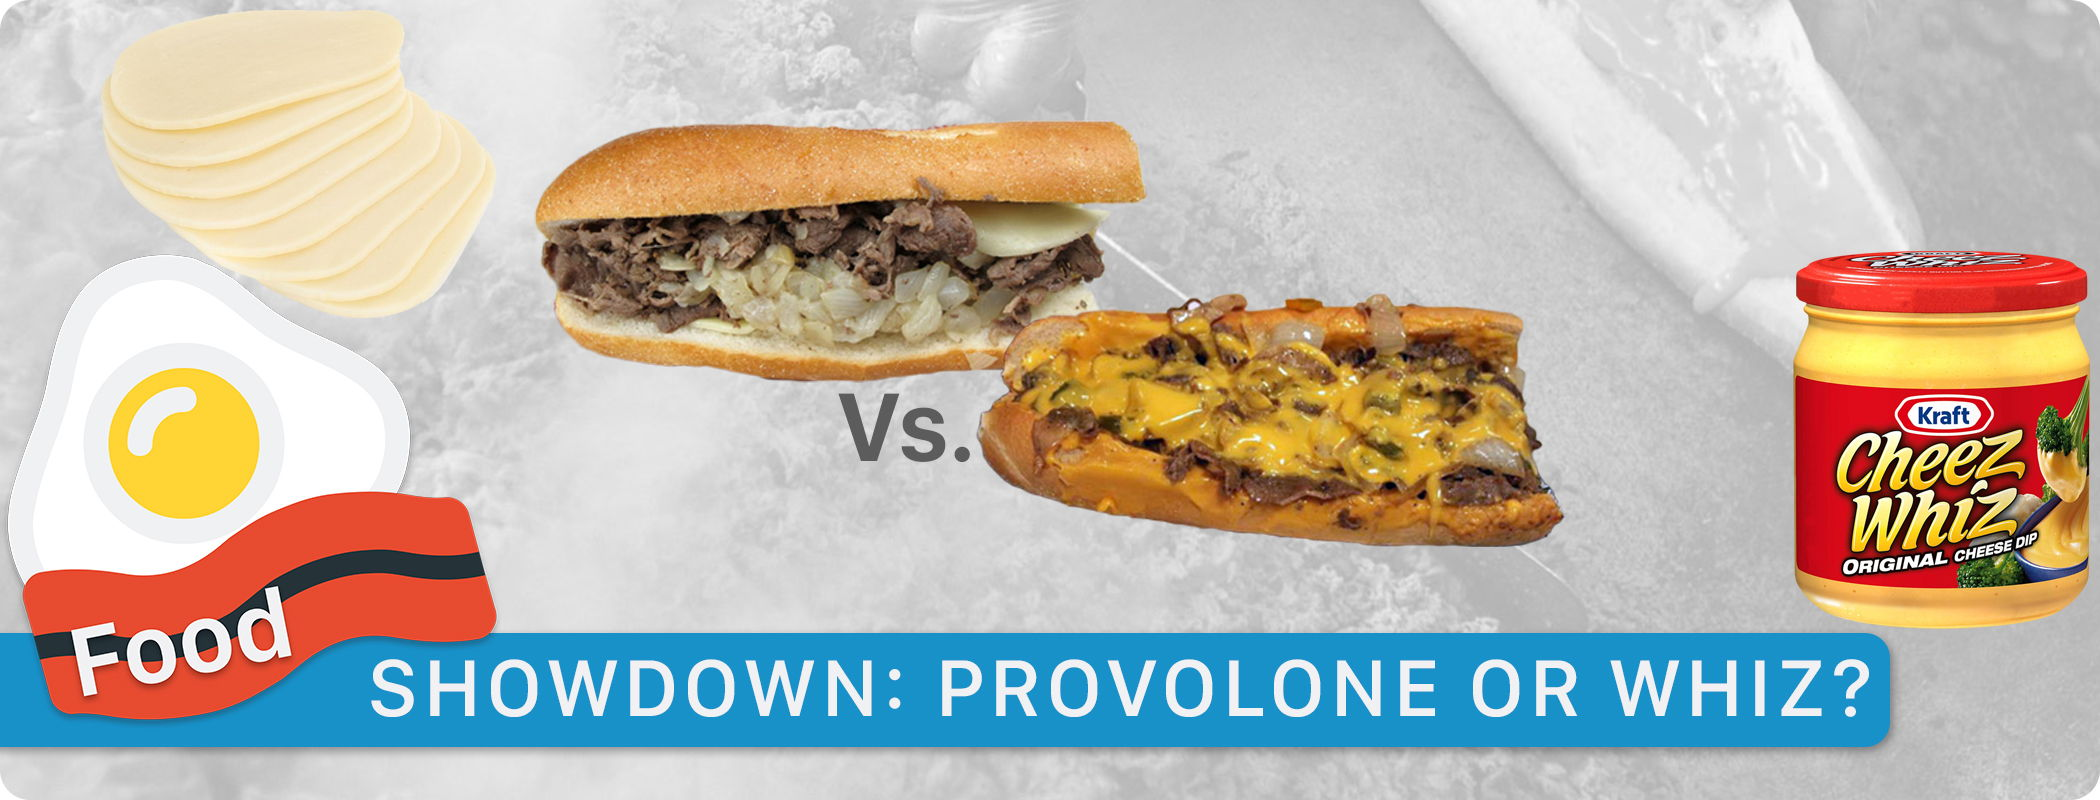 Food Showdown: Cheesesteaks - Provolone Or Cheez Whiz?